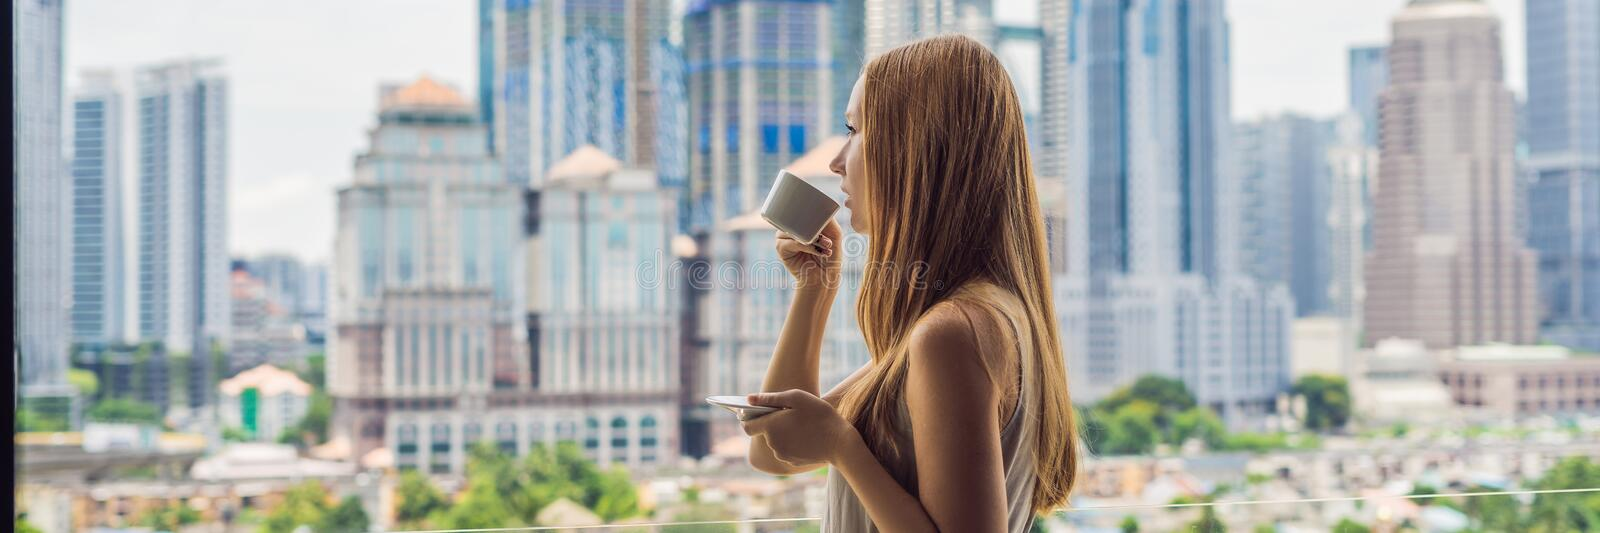 Young woman drinks coffee in the morning on the balcony overlooking the big city and skyscrapers BANNER long format royalty free stock photos